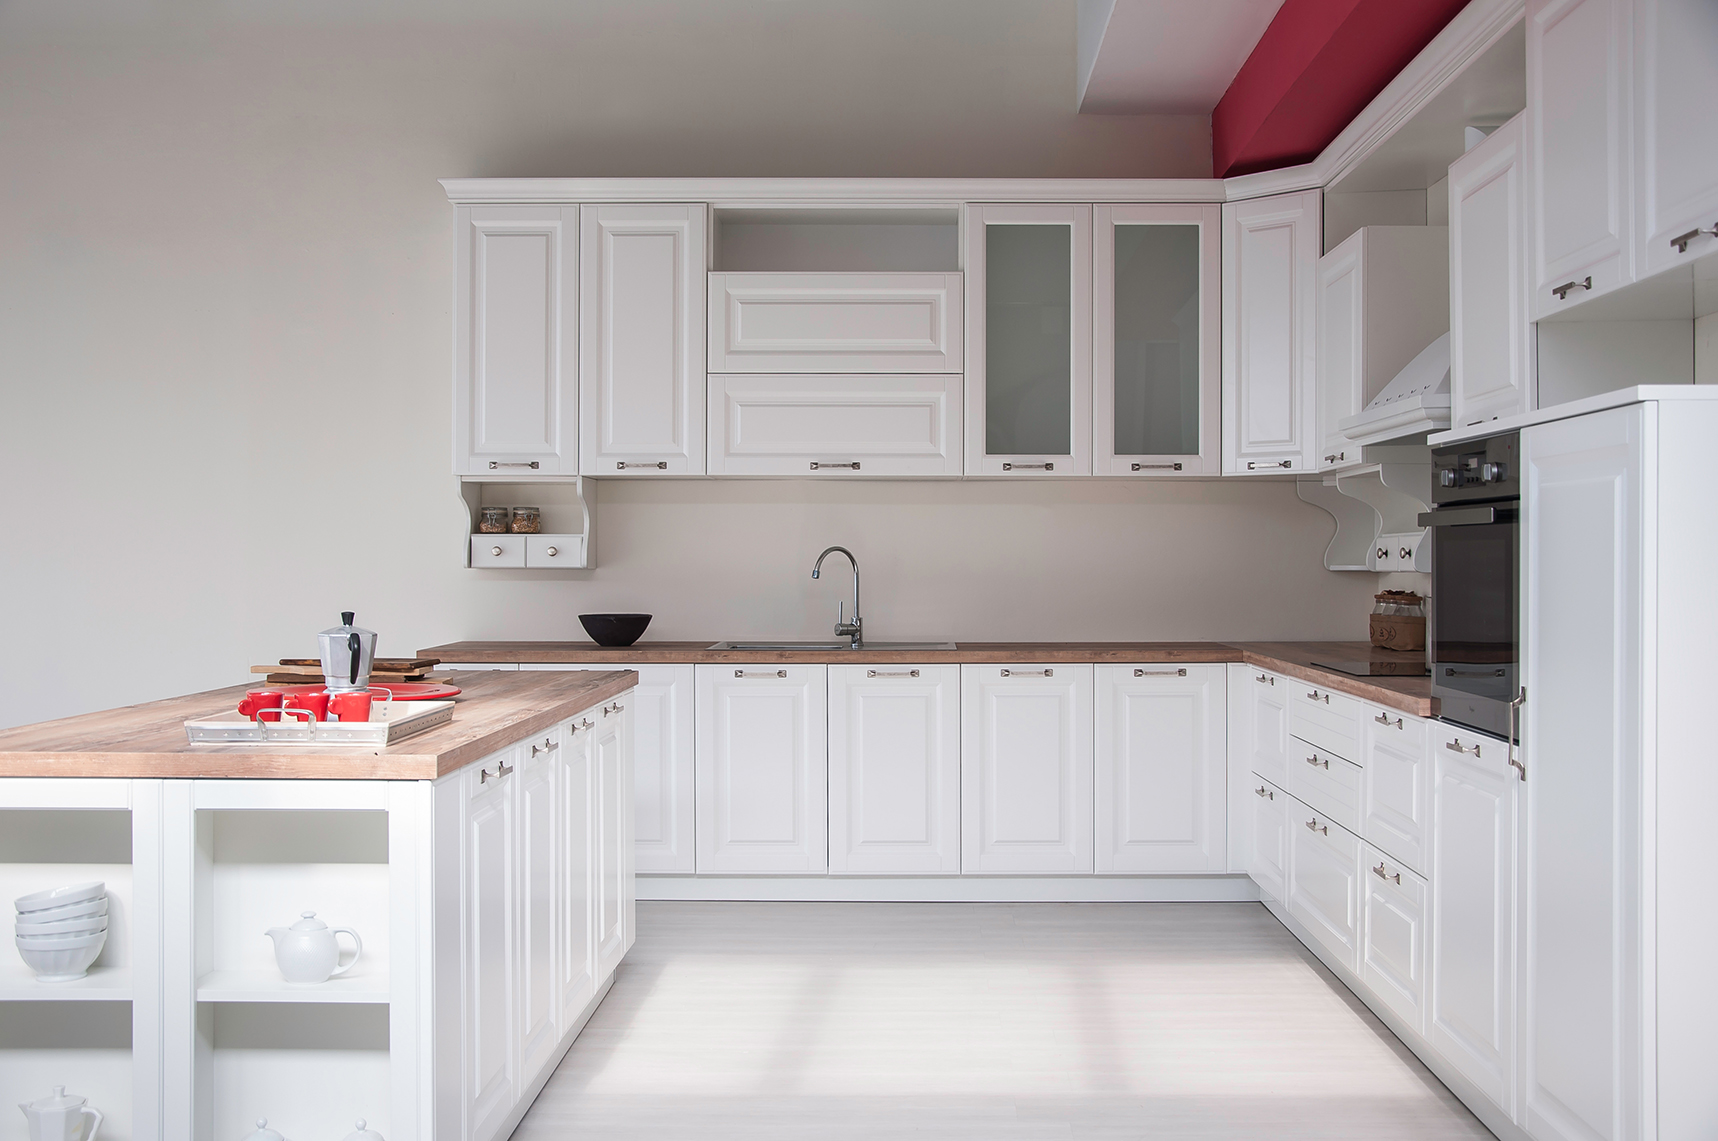 Chic, always and forever, Epoca new classic kitchen design by GACAFERI